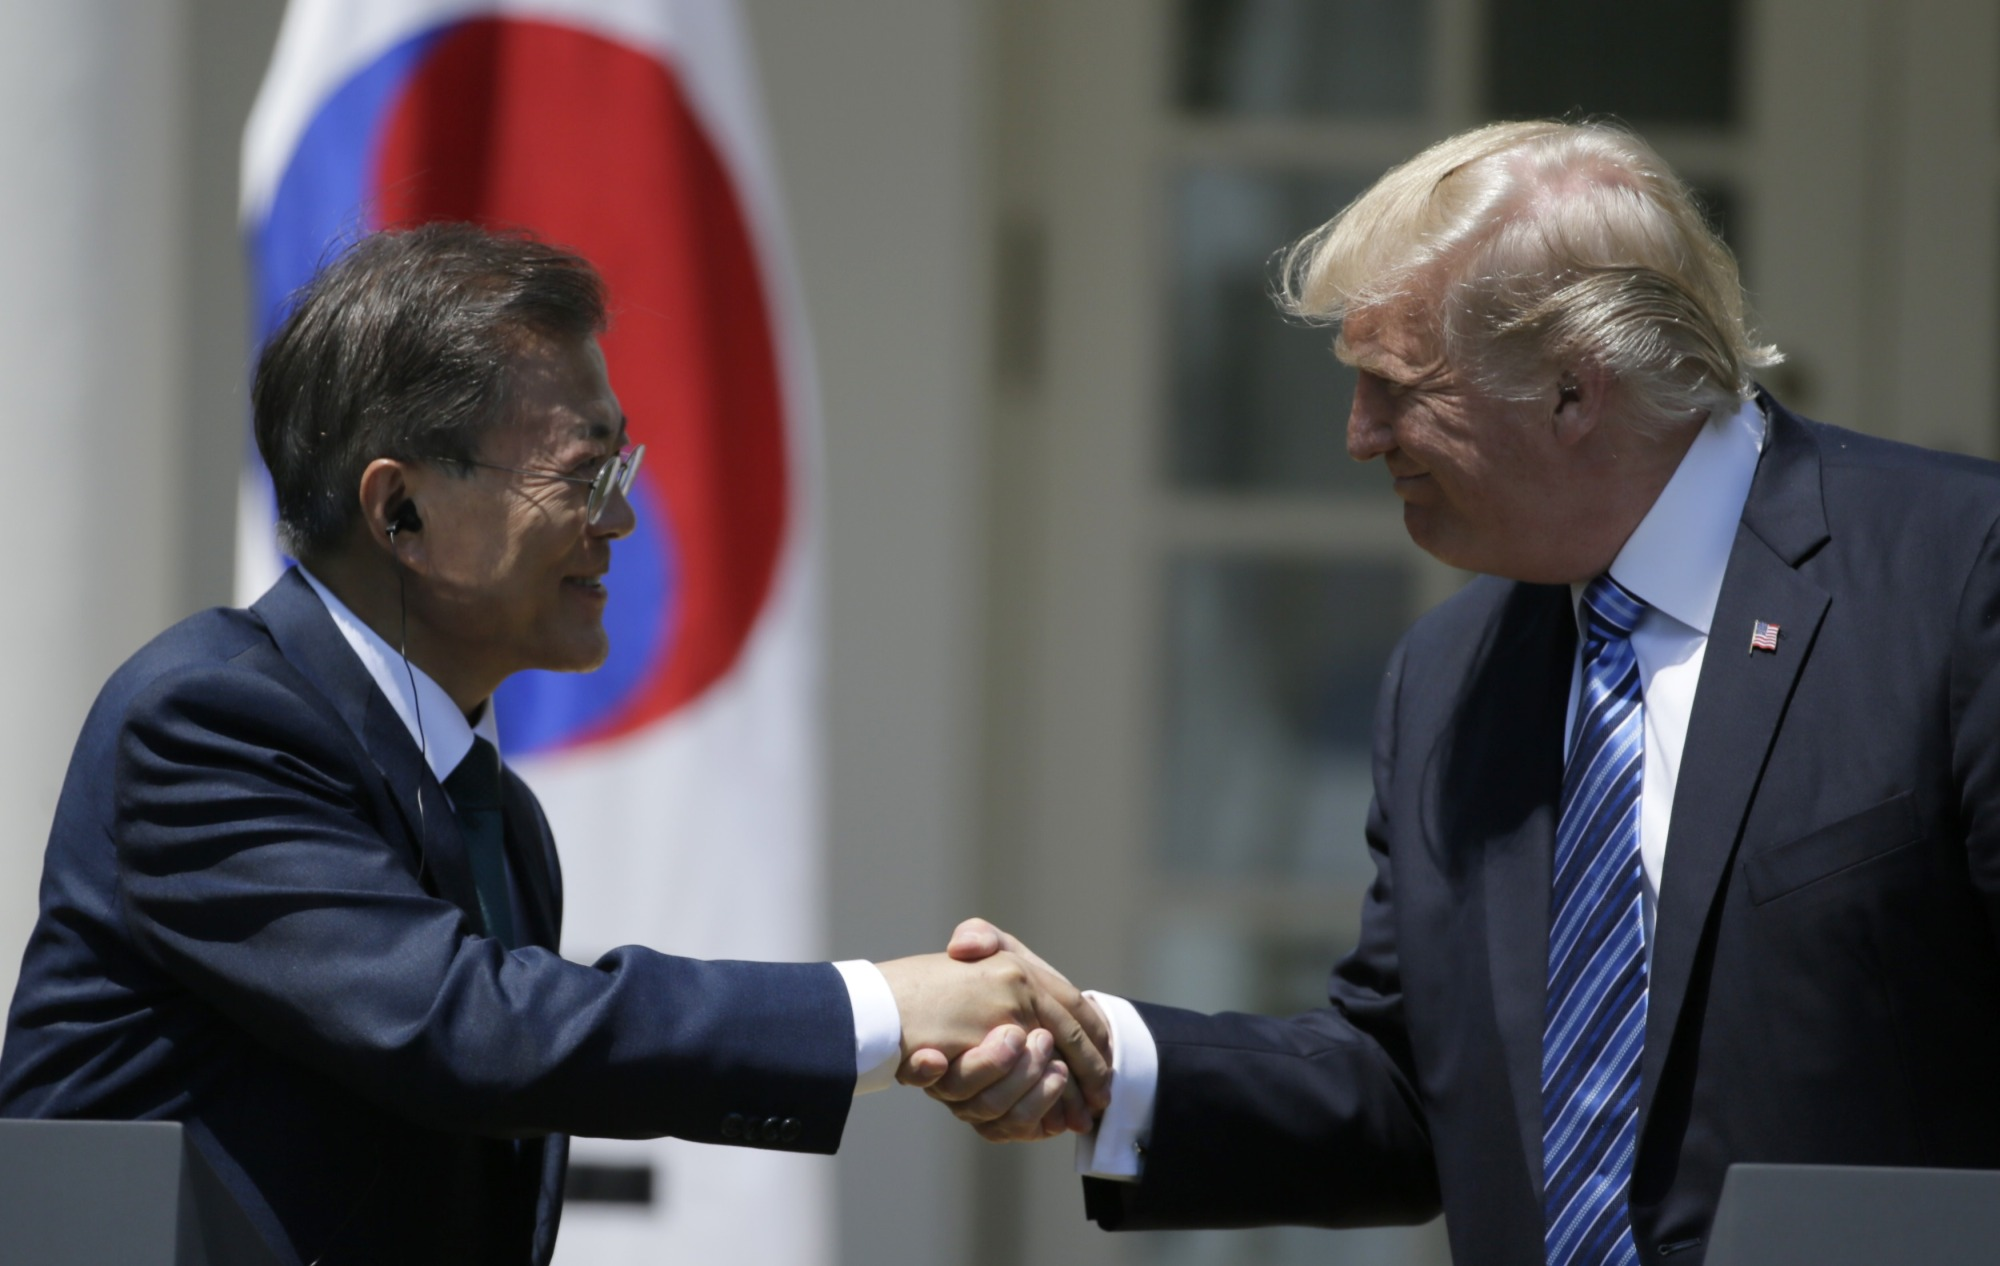 Trump threatens to axe South Korea trade deal